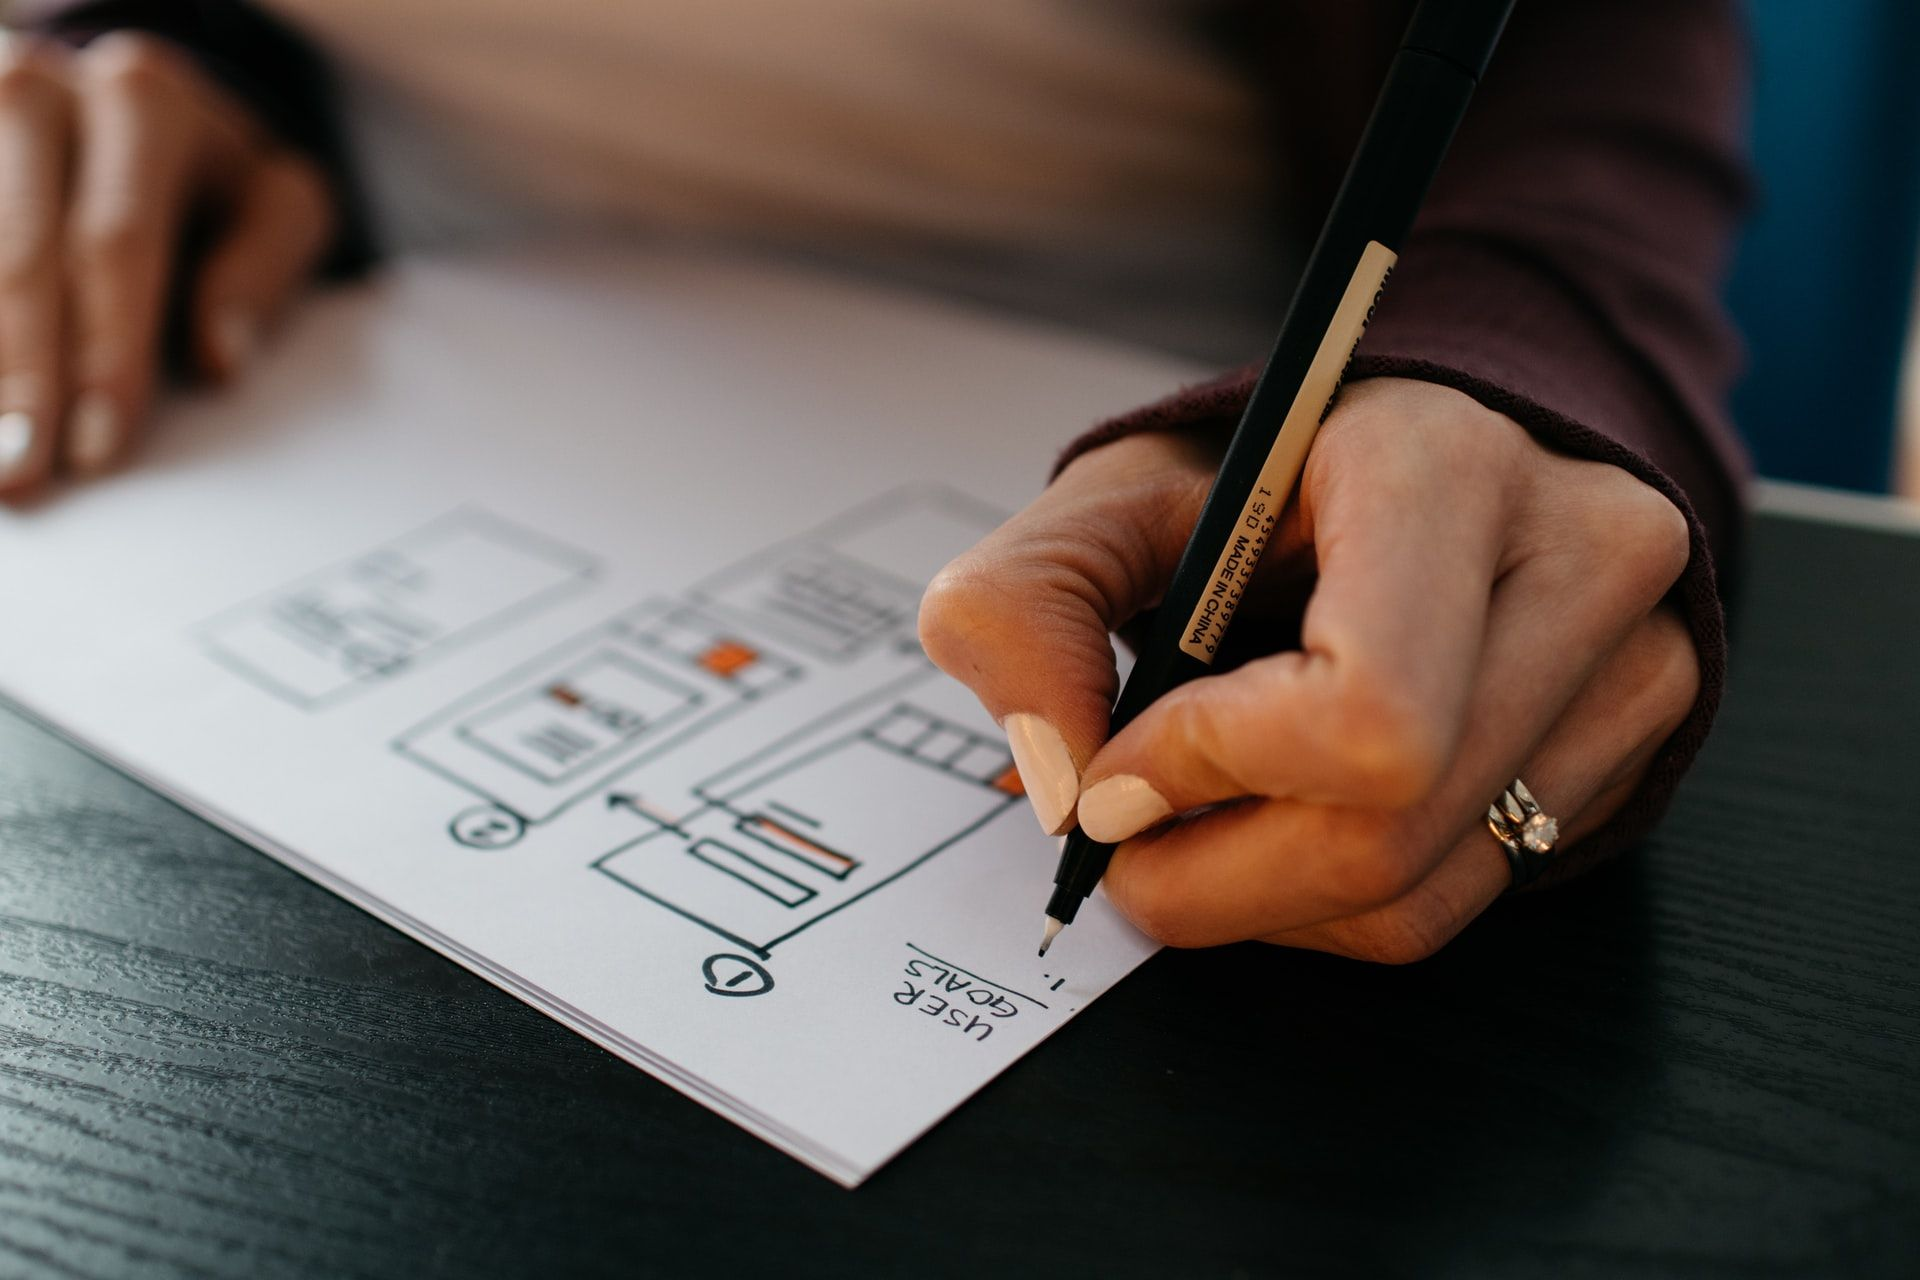 A woman sketching out a wireframe for a web application.